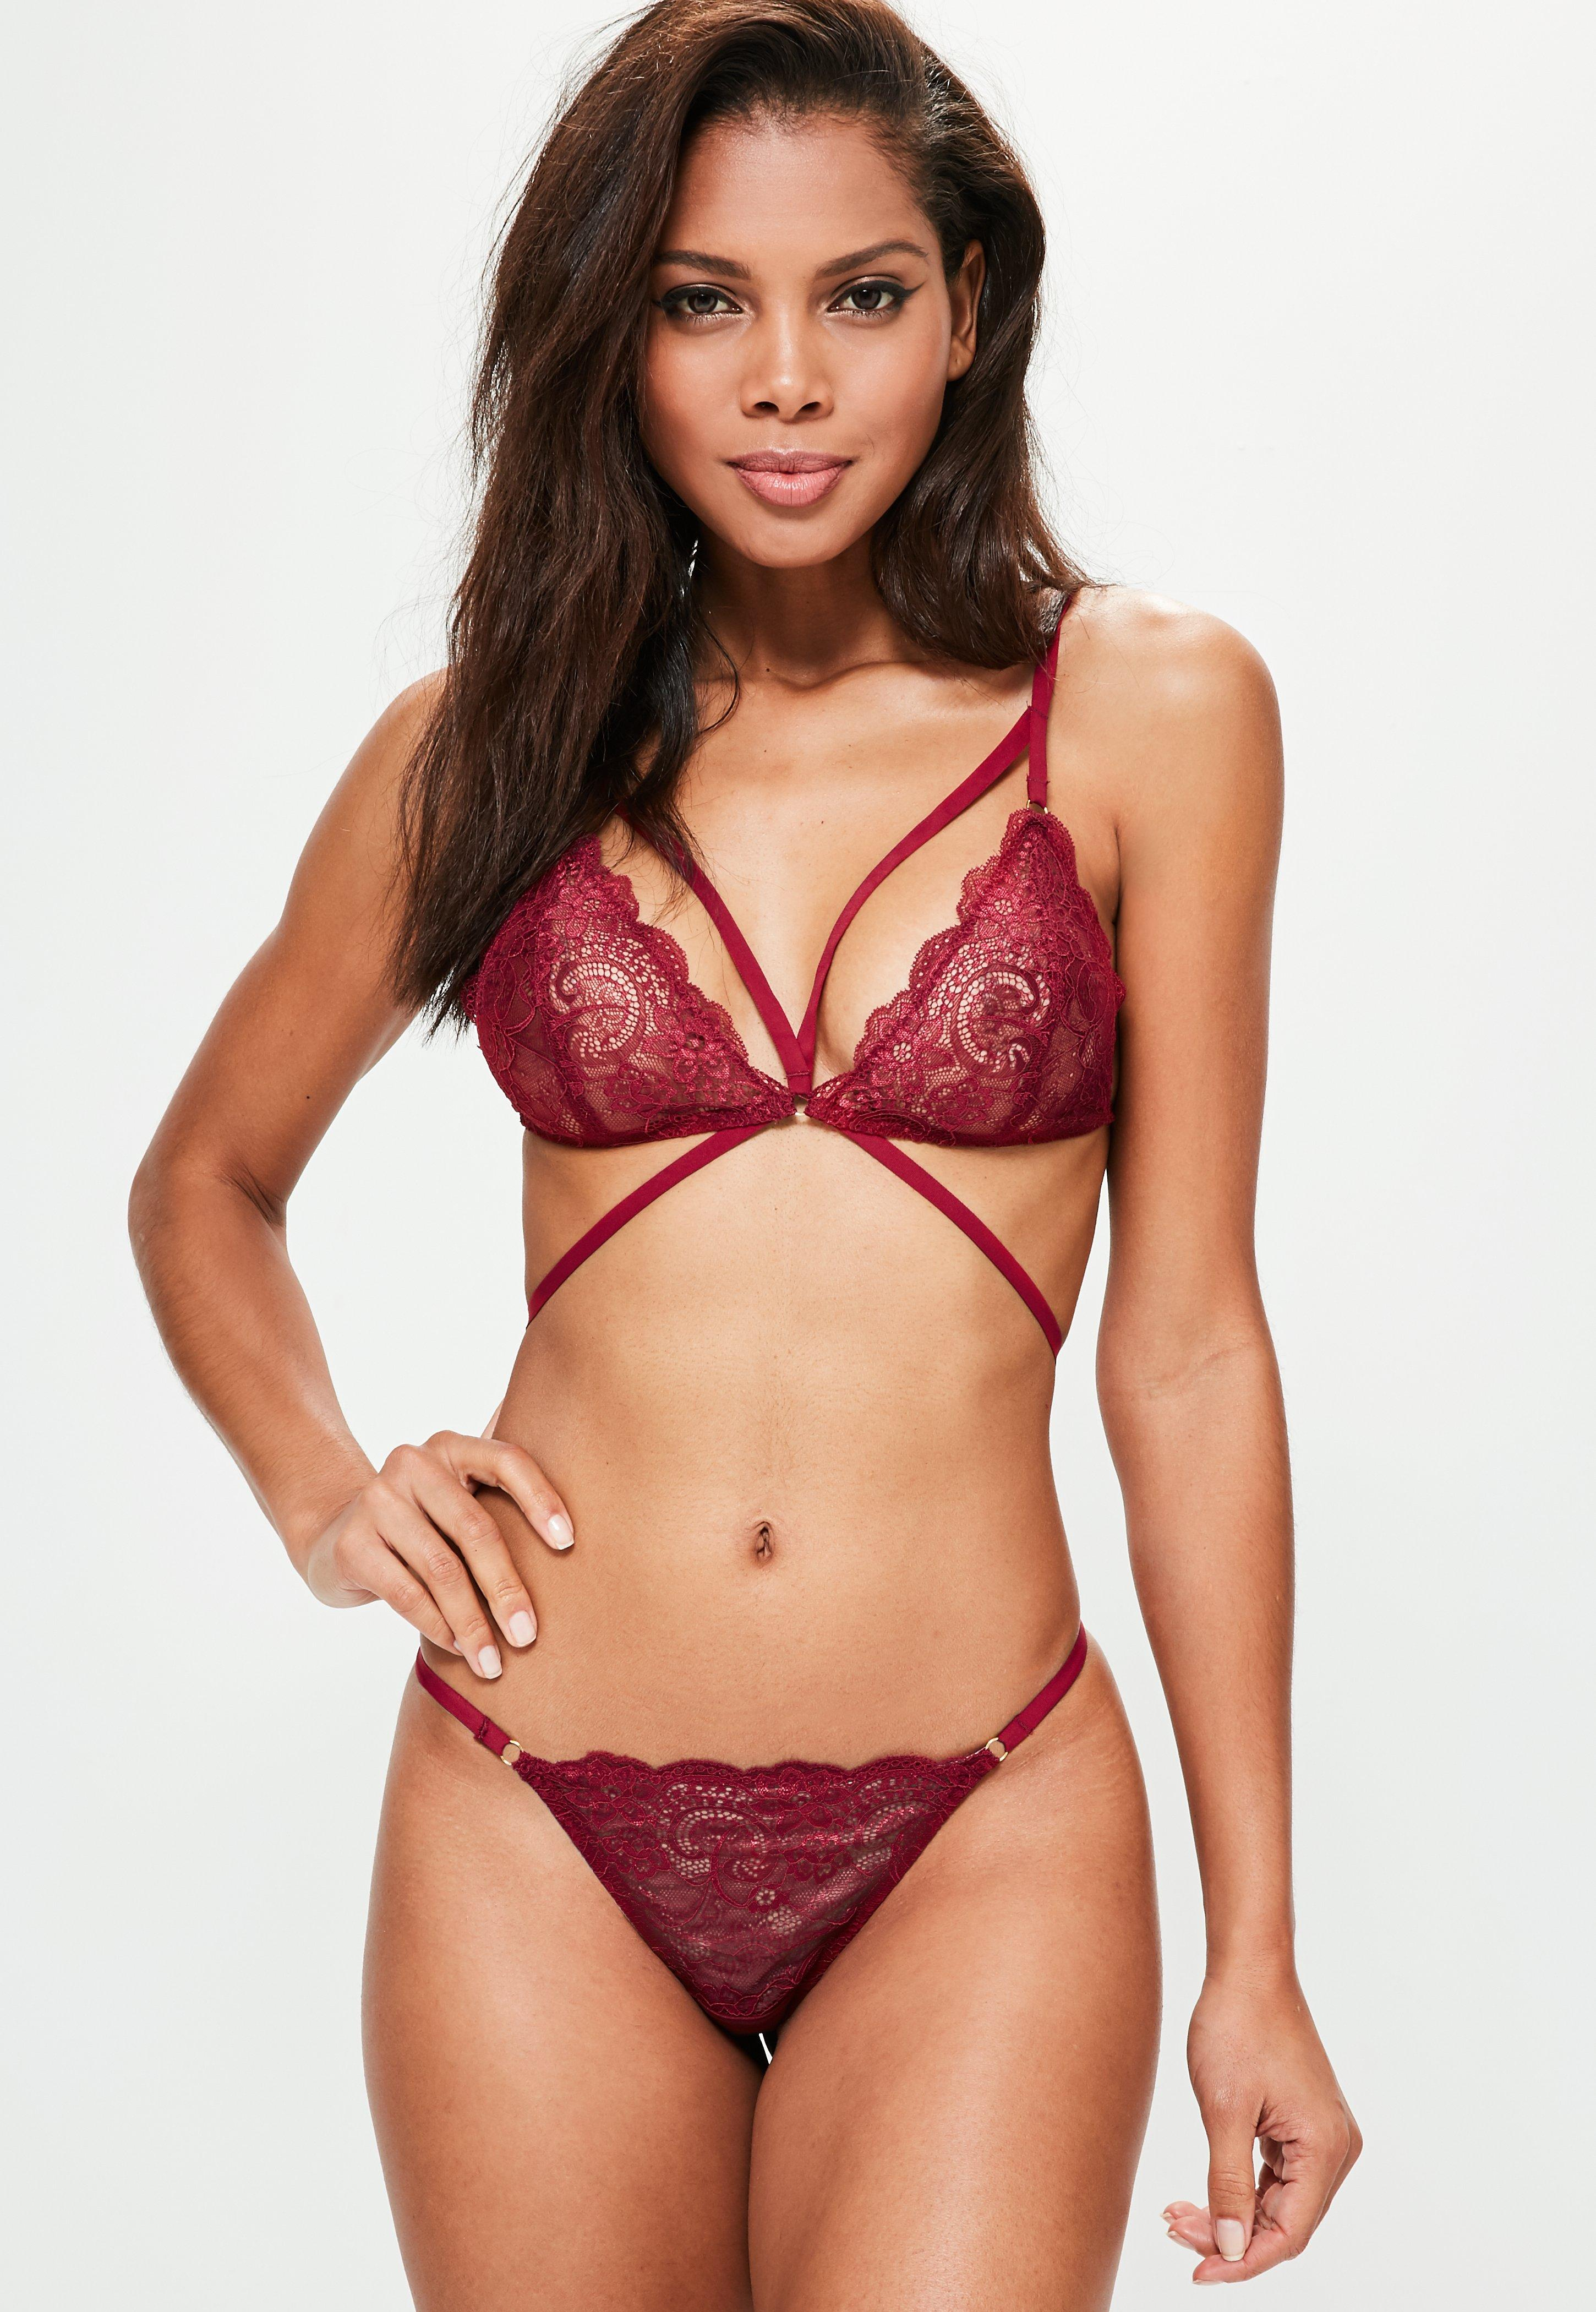 Errotic lingerie